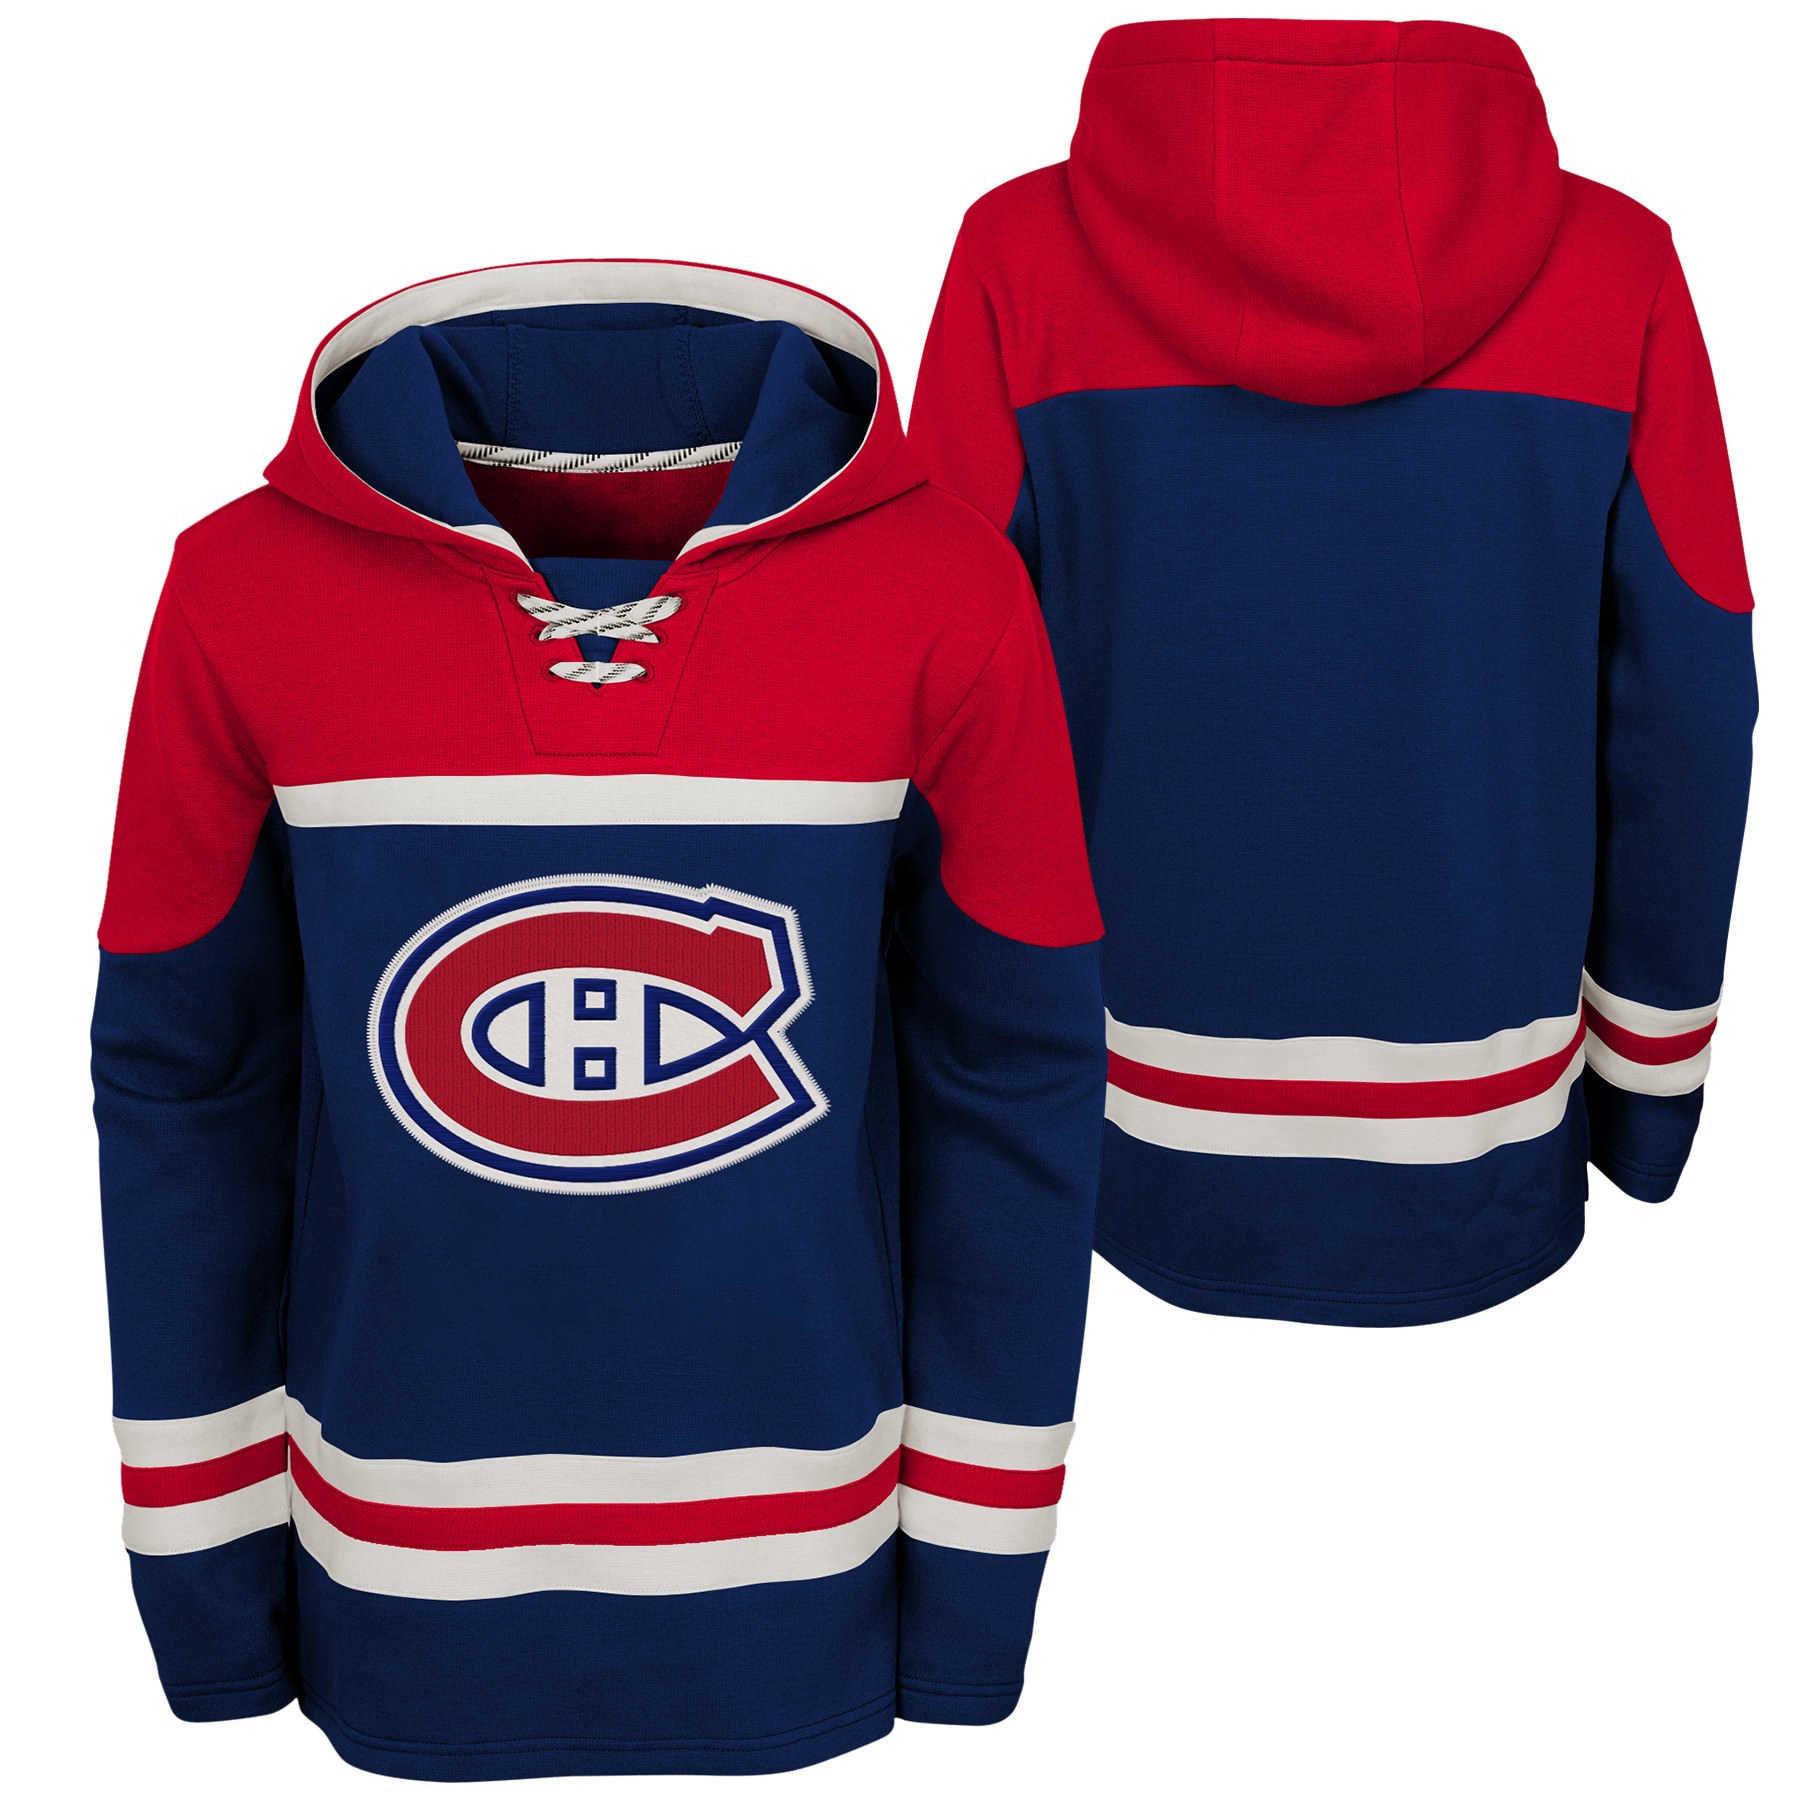 Outerstuff Youth Montreal Canadiens NHL Asset Hockey Hoodie b28bdb37f5a